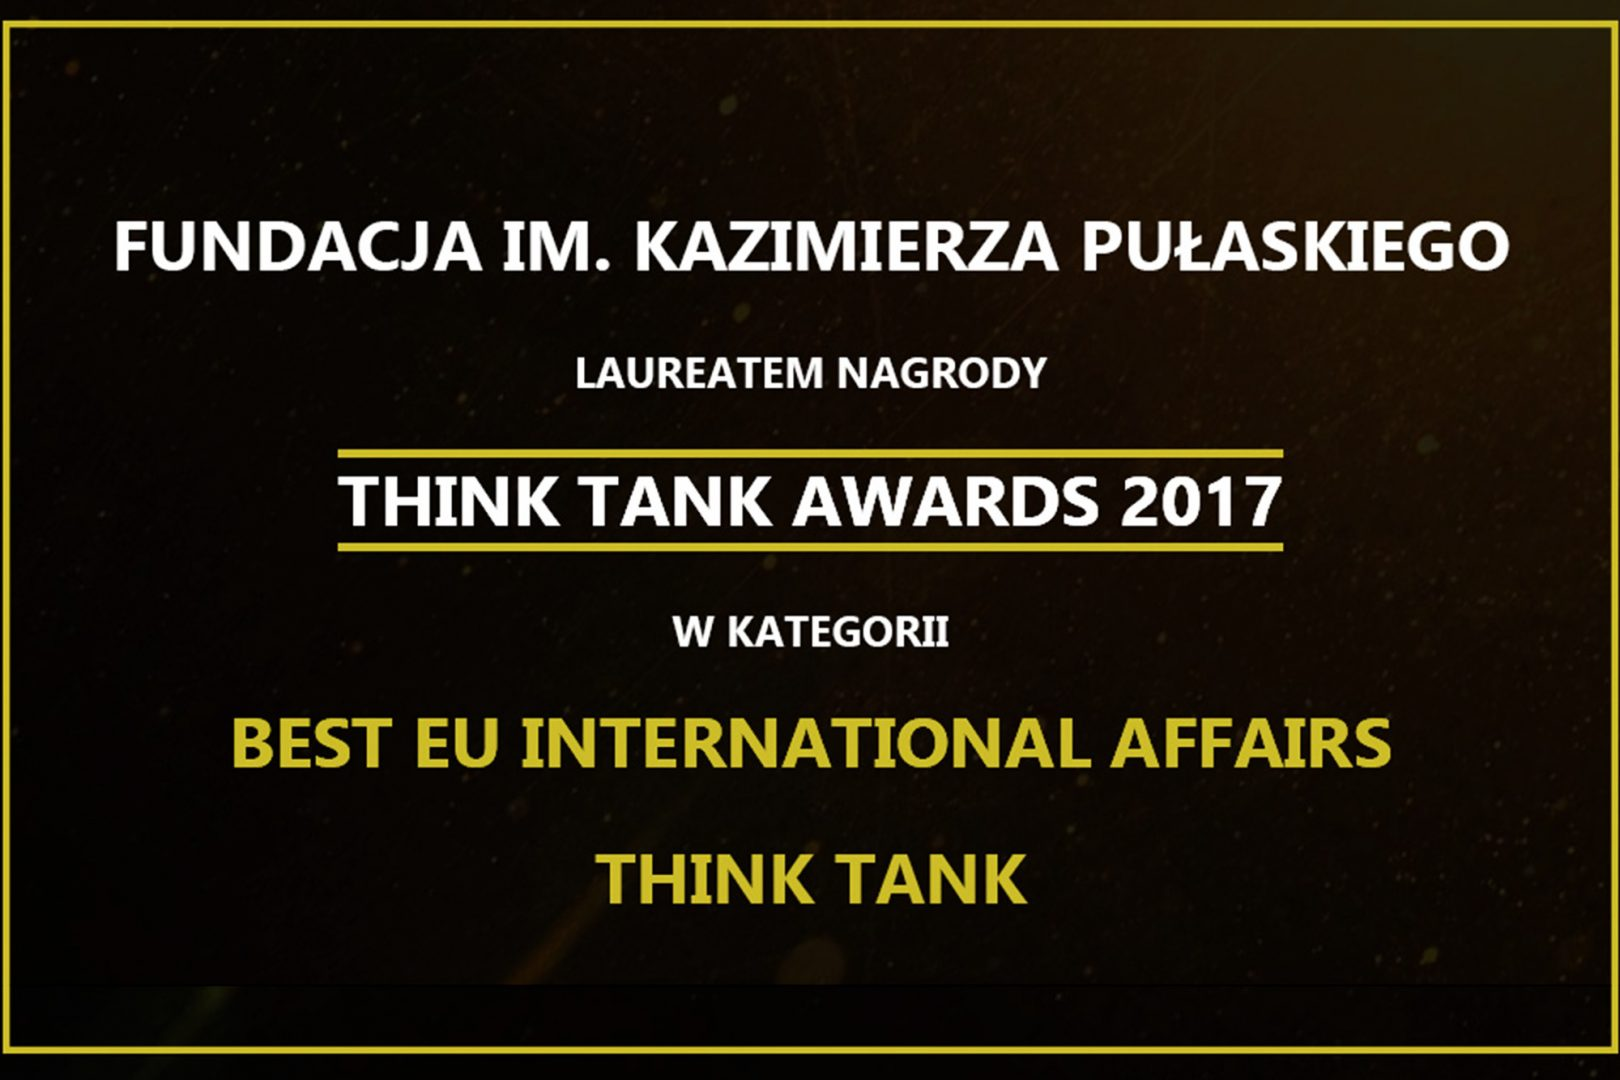 Pulaski Foundation recognized as the best think tank in field of international affairs in the European Union.